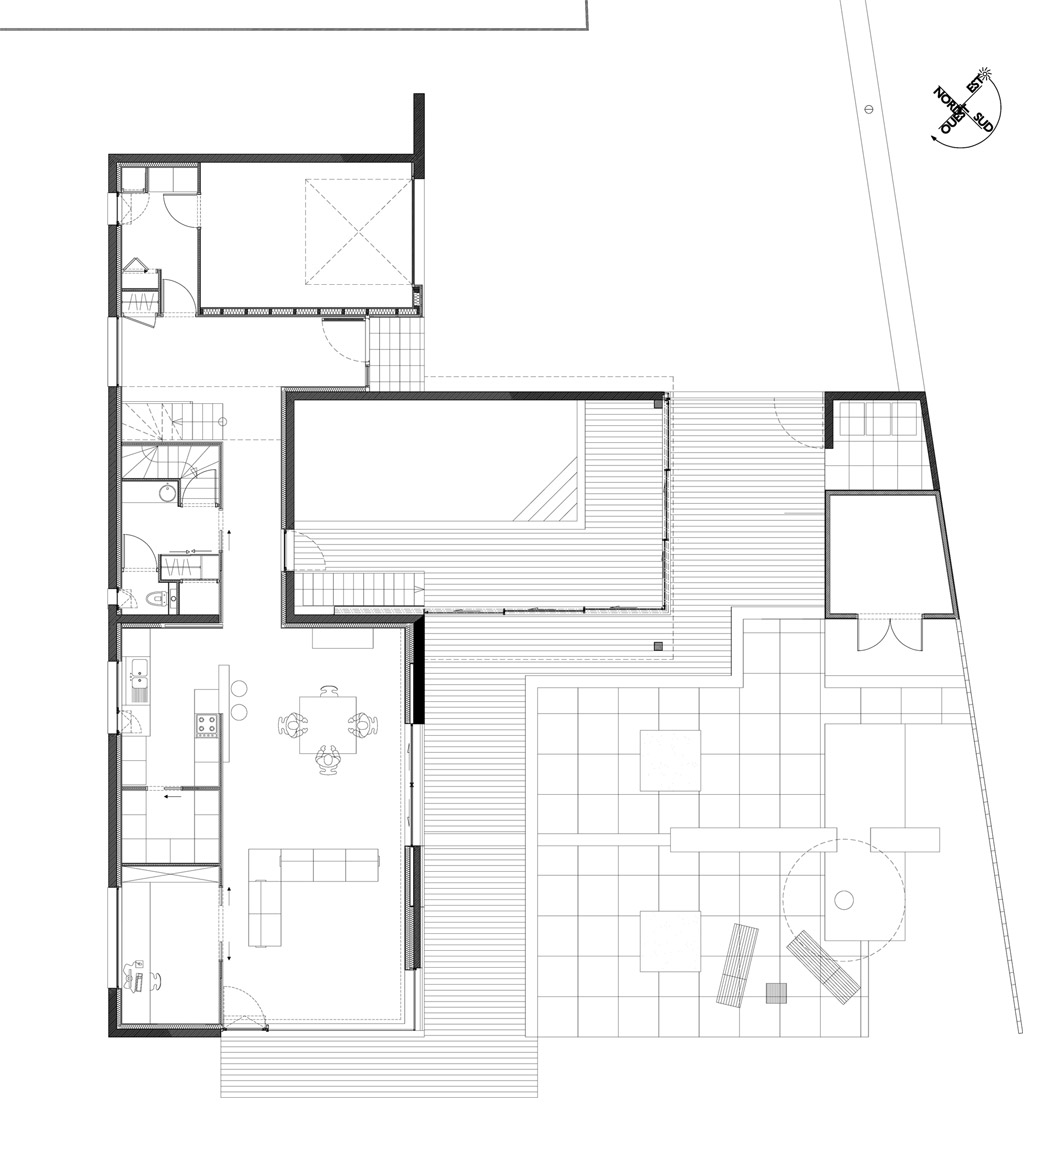 Maison contemporaine avec piscine int rieure apla for Plan d architecture